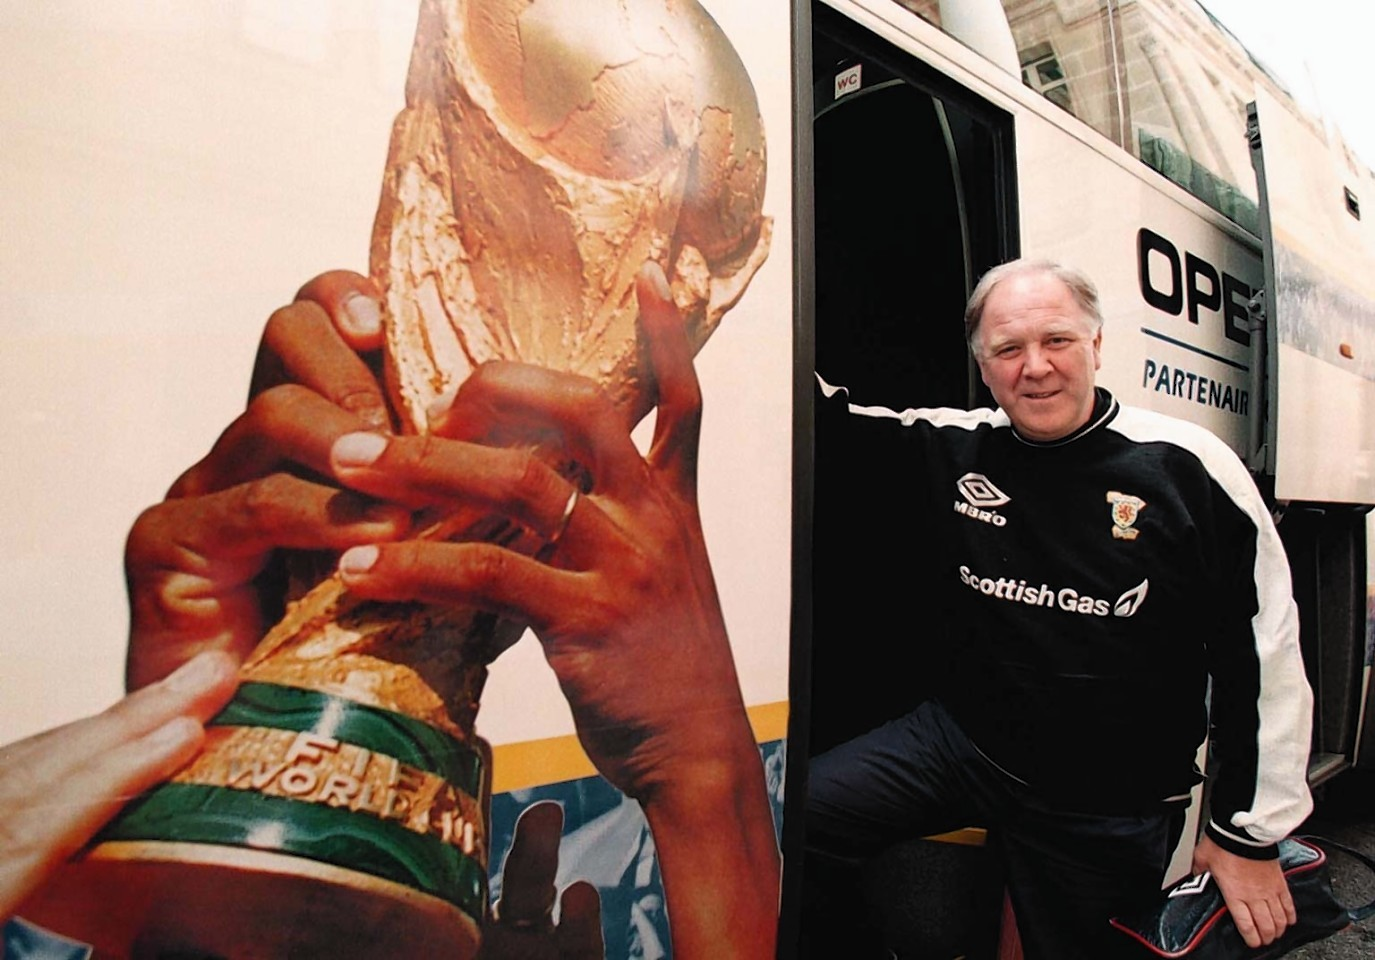 Brown was the last man to guide Scotland to a major tournament when he took the national team to the France 98 World Cup